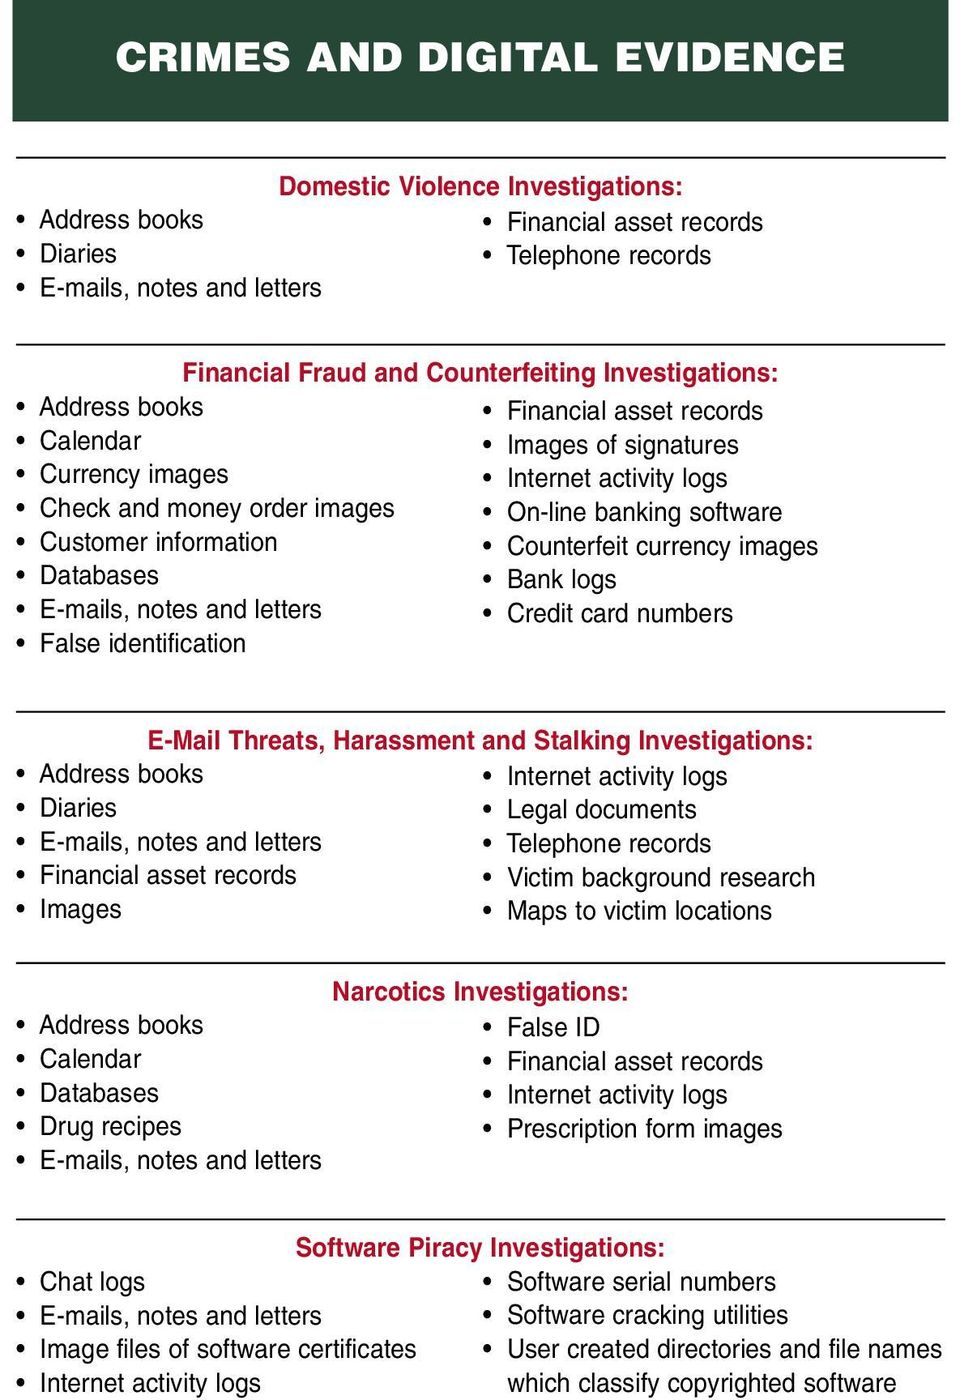 Counterfeit currency images Databases Bank logs E-mails, notes and letters Credit card numbers False identification E-Mail Threats, Harassment and Stalking Investigations: Address books Internet